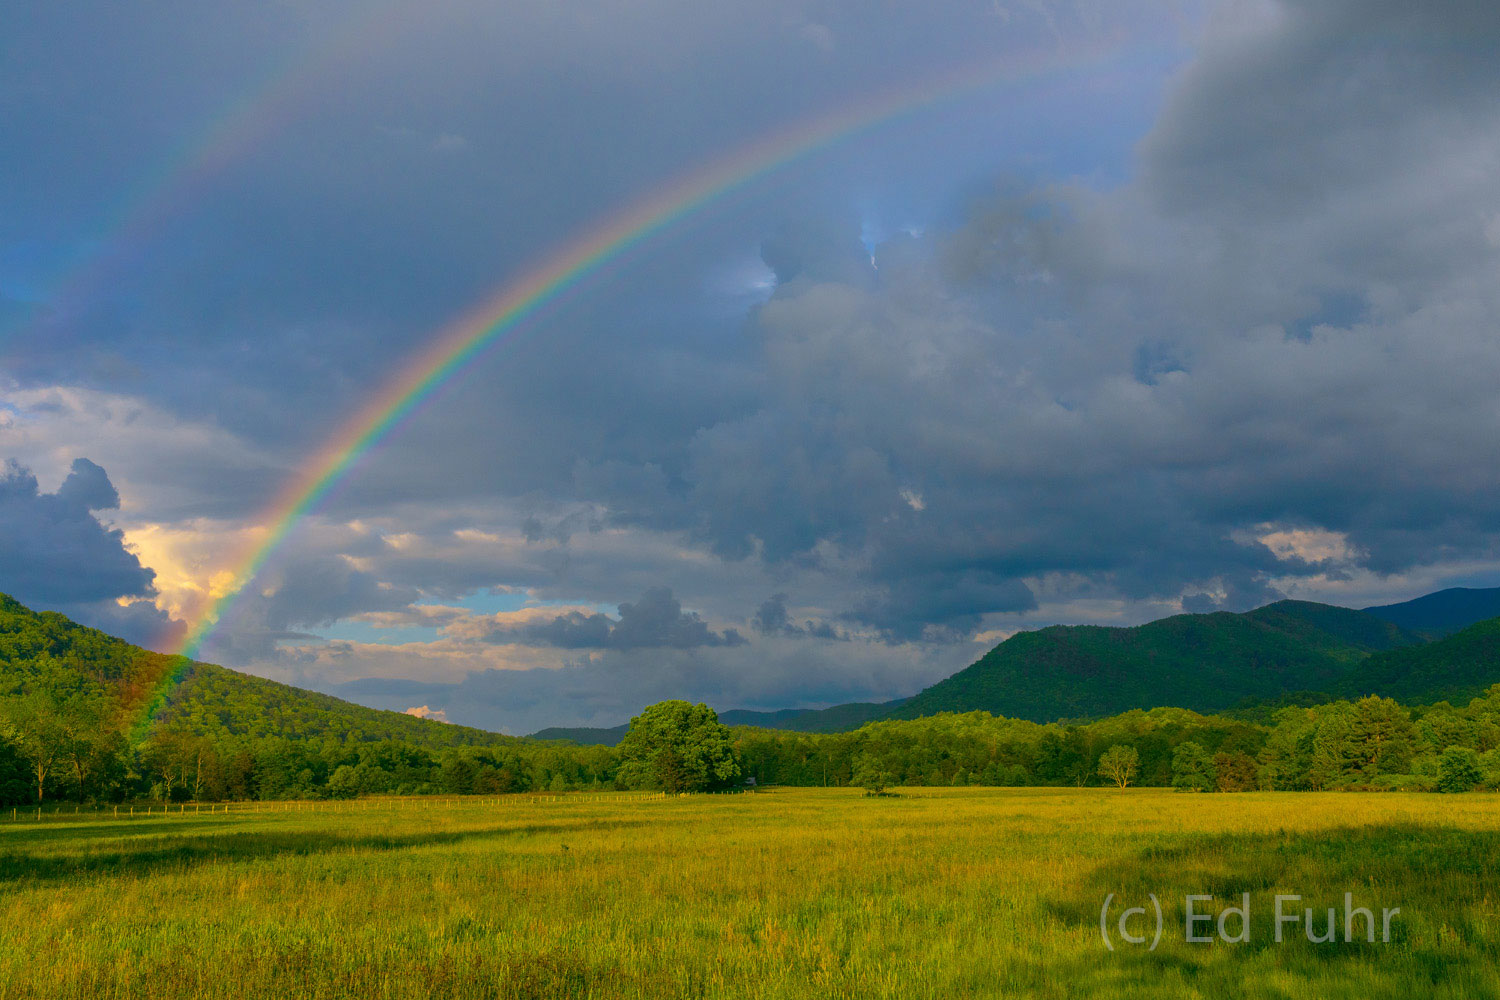 The eternal promise - a double rainbow spans the Cades Cove valley after a spring rain.